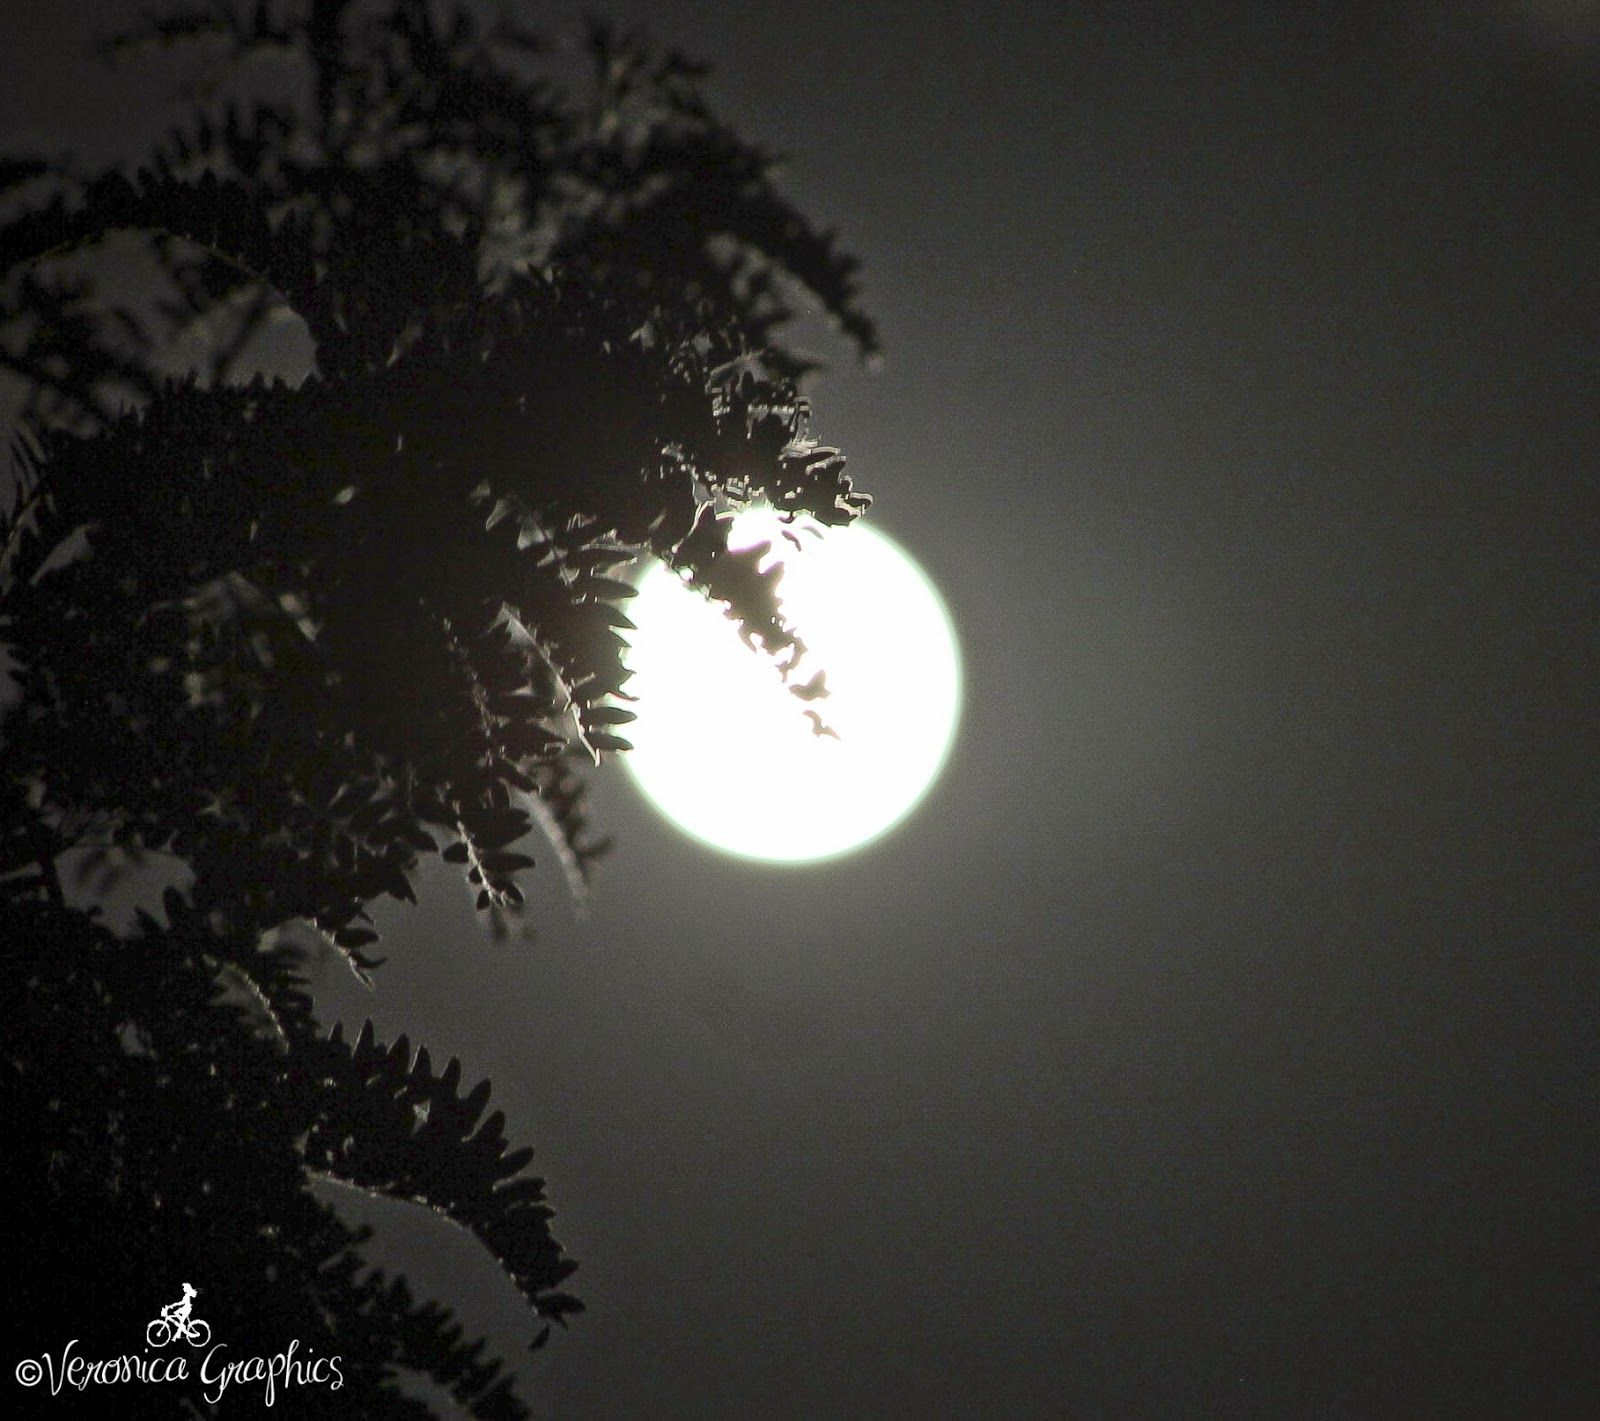 Mommy plus Five: July 12, 2014 - Supermoon.